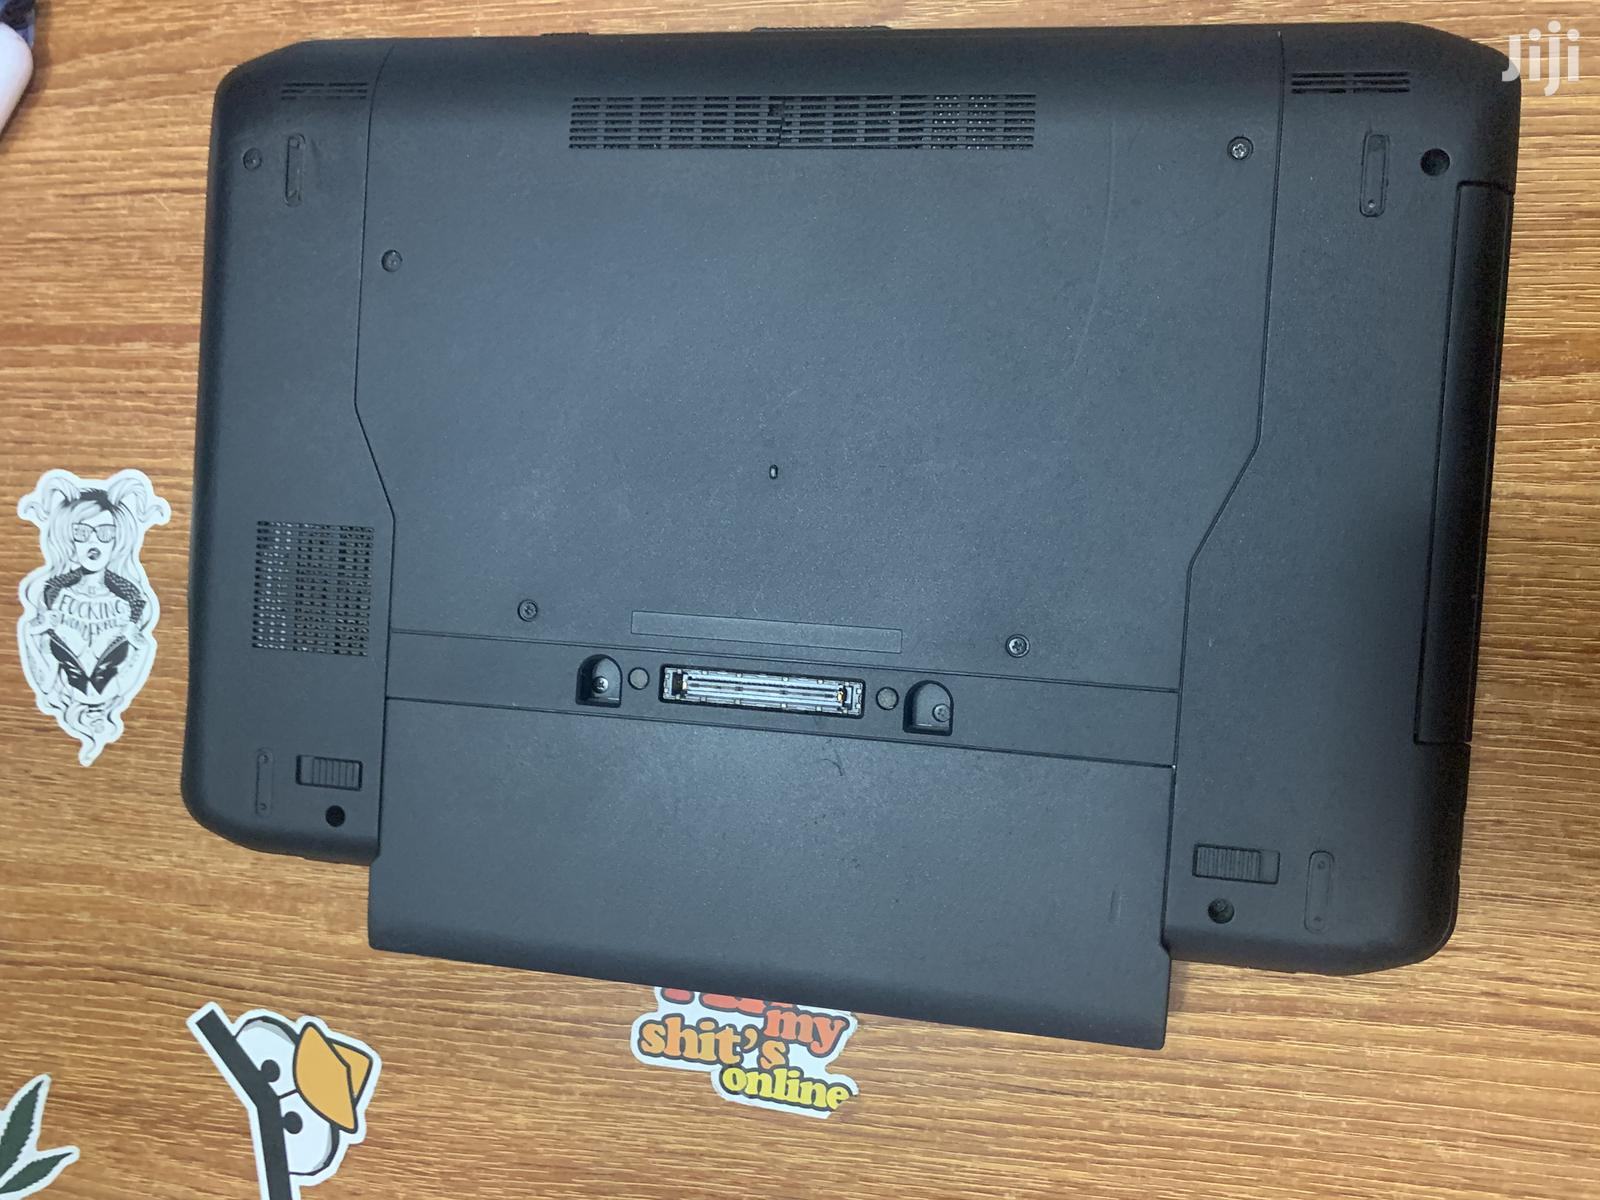 Laptop Dell Latitude E5420 4GB Intel Core I5 HDD 750GB | Laptops & Computers for sale in Kokomlemle, Greater Accra, Ghana